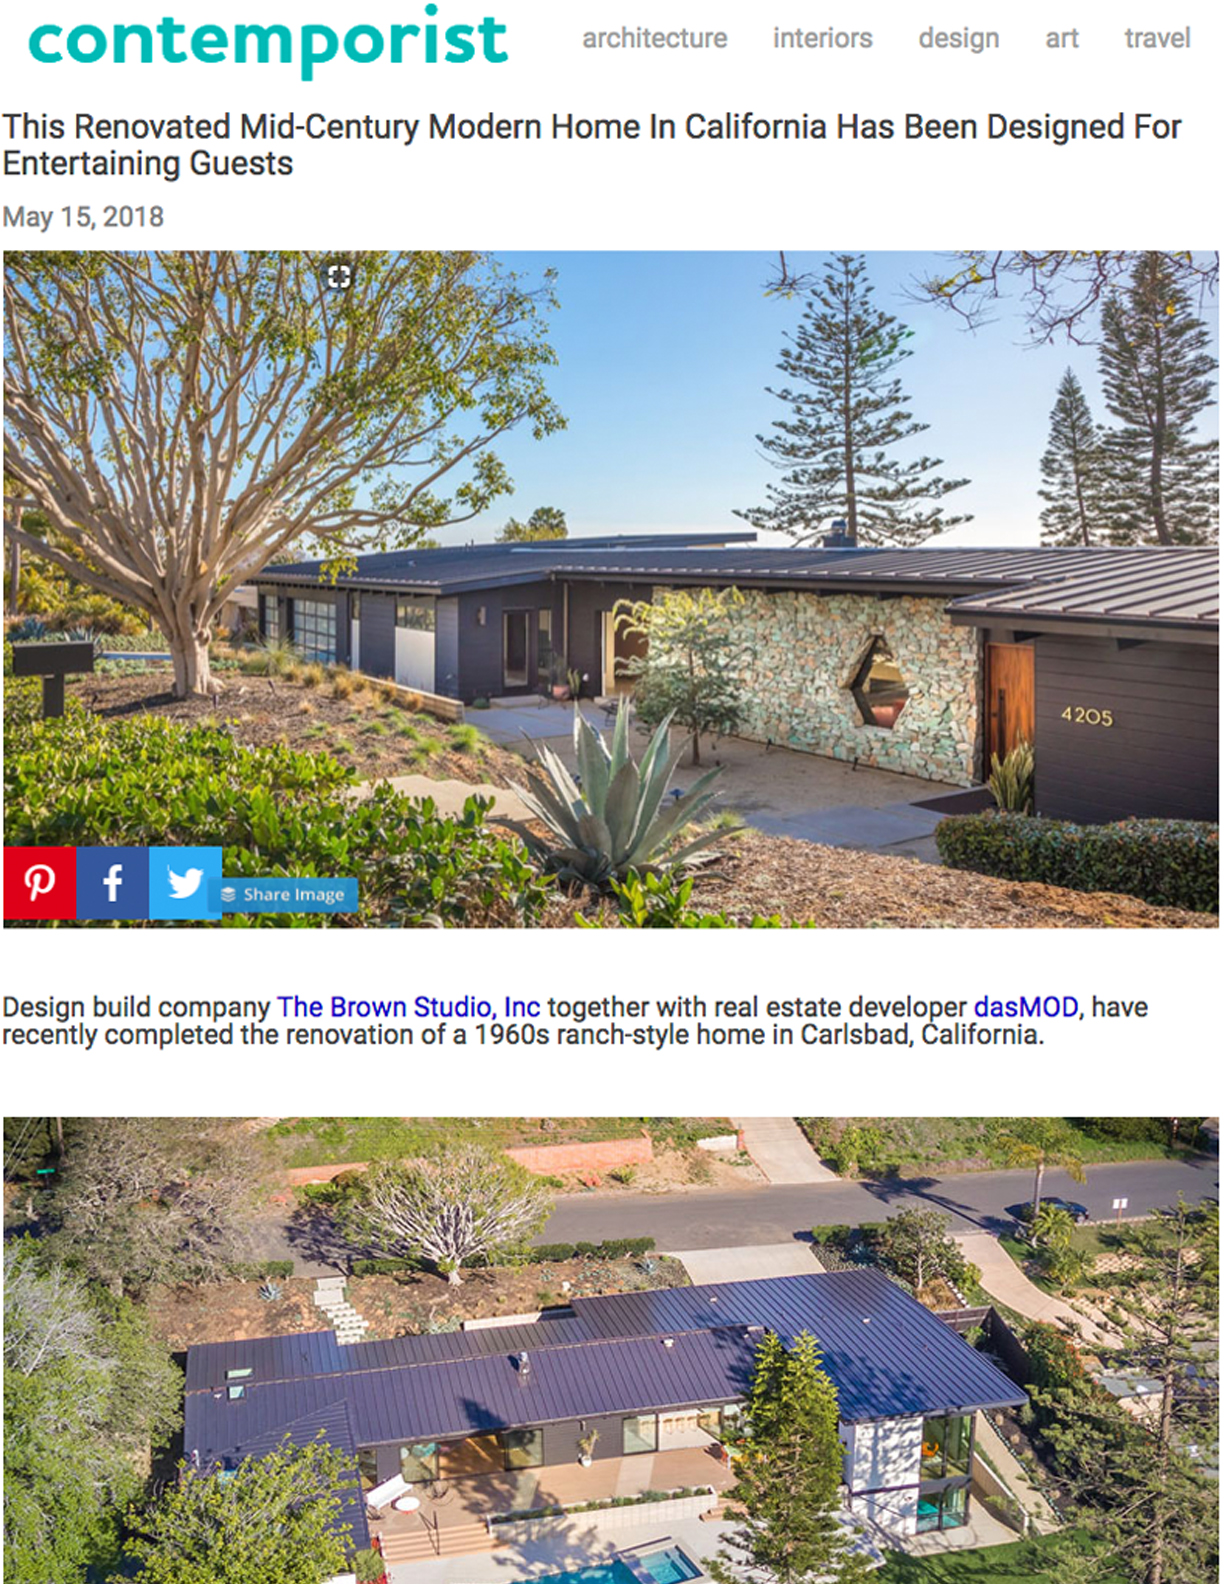 CONTEMPORIST   MAY 15, 2018  Renovated Mid-Century Modern Home Designed to Entertain Guests.